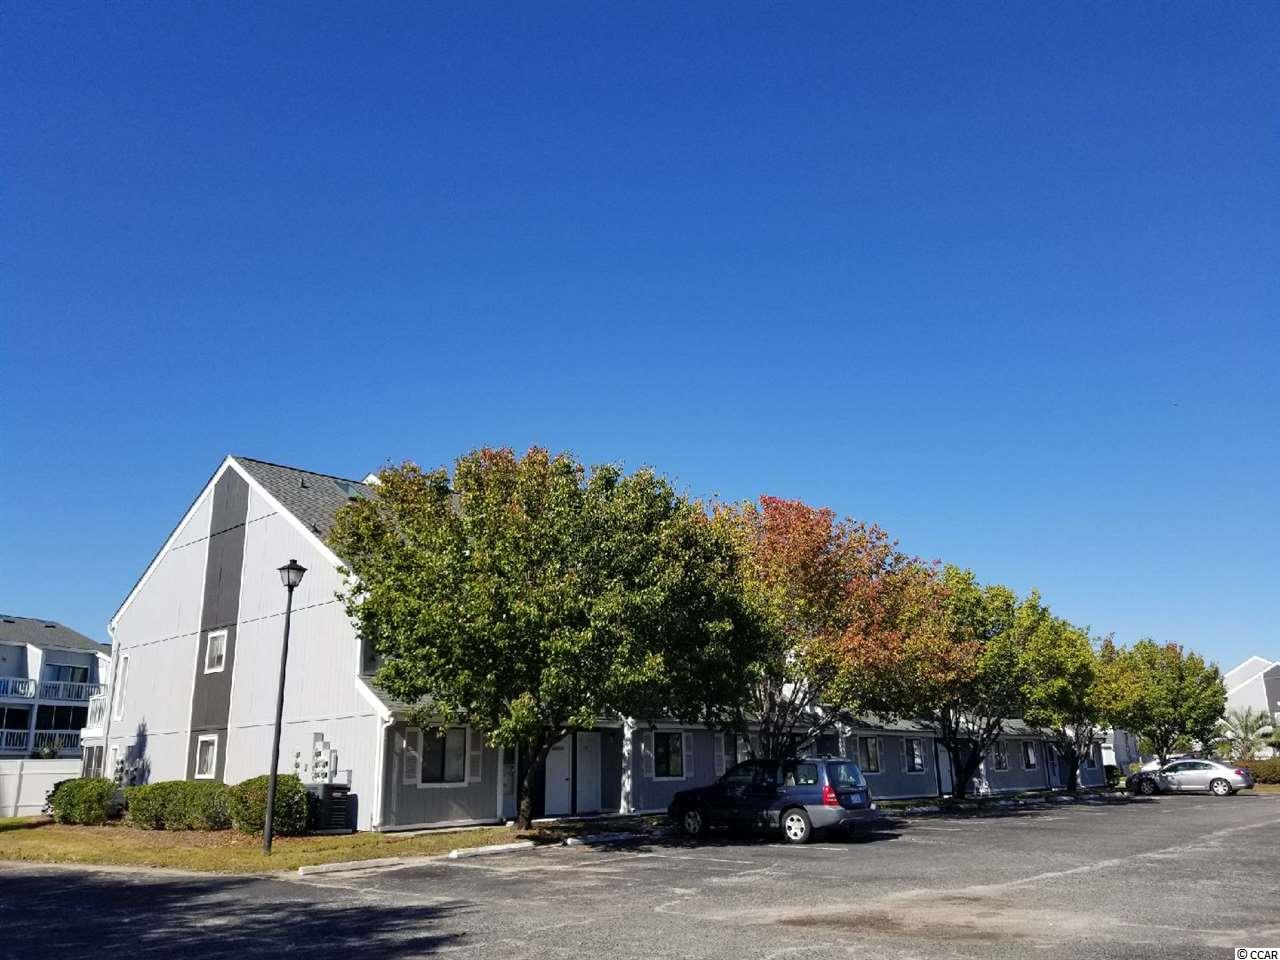 Baytree Golf Colony Eff/1BA condo that's been updated!  Beautifully decorated, washer/dryer, fully furnished.  Community offers: indoor/outdoor pools.  Located close to golf, fine dining, shows, shopping & most anything else you want or need!